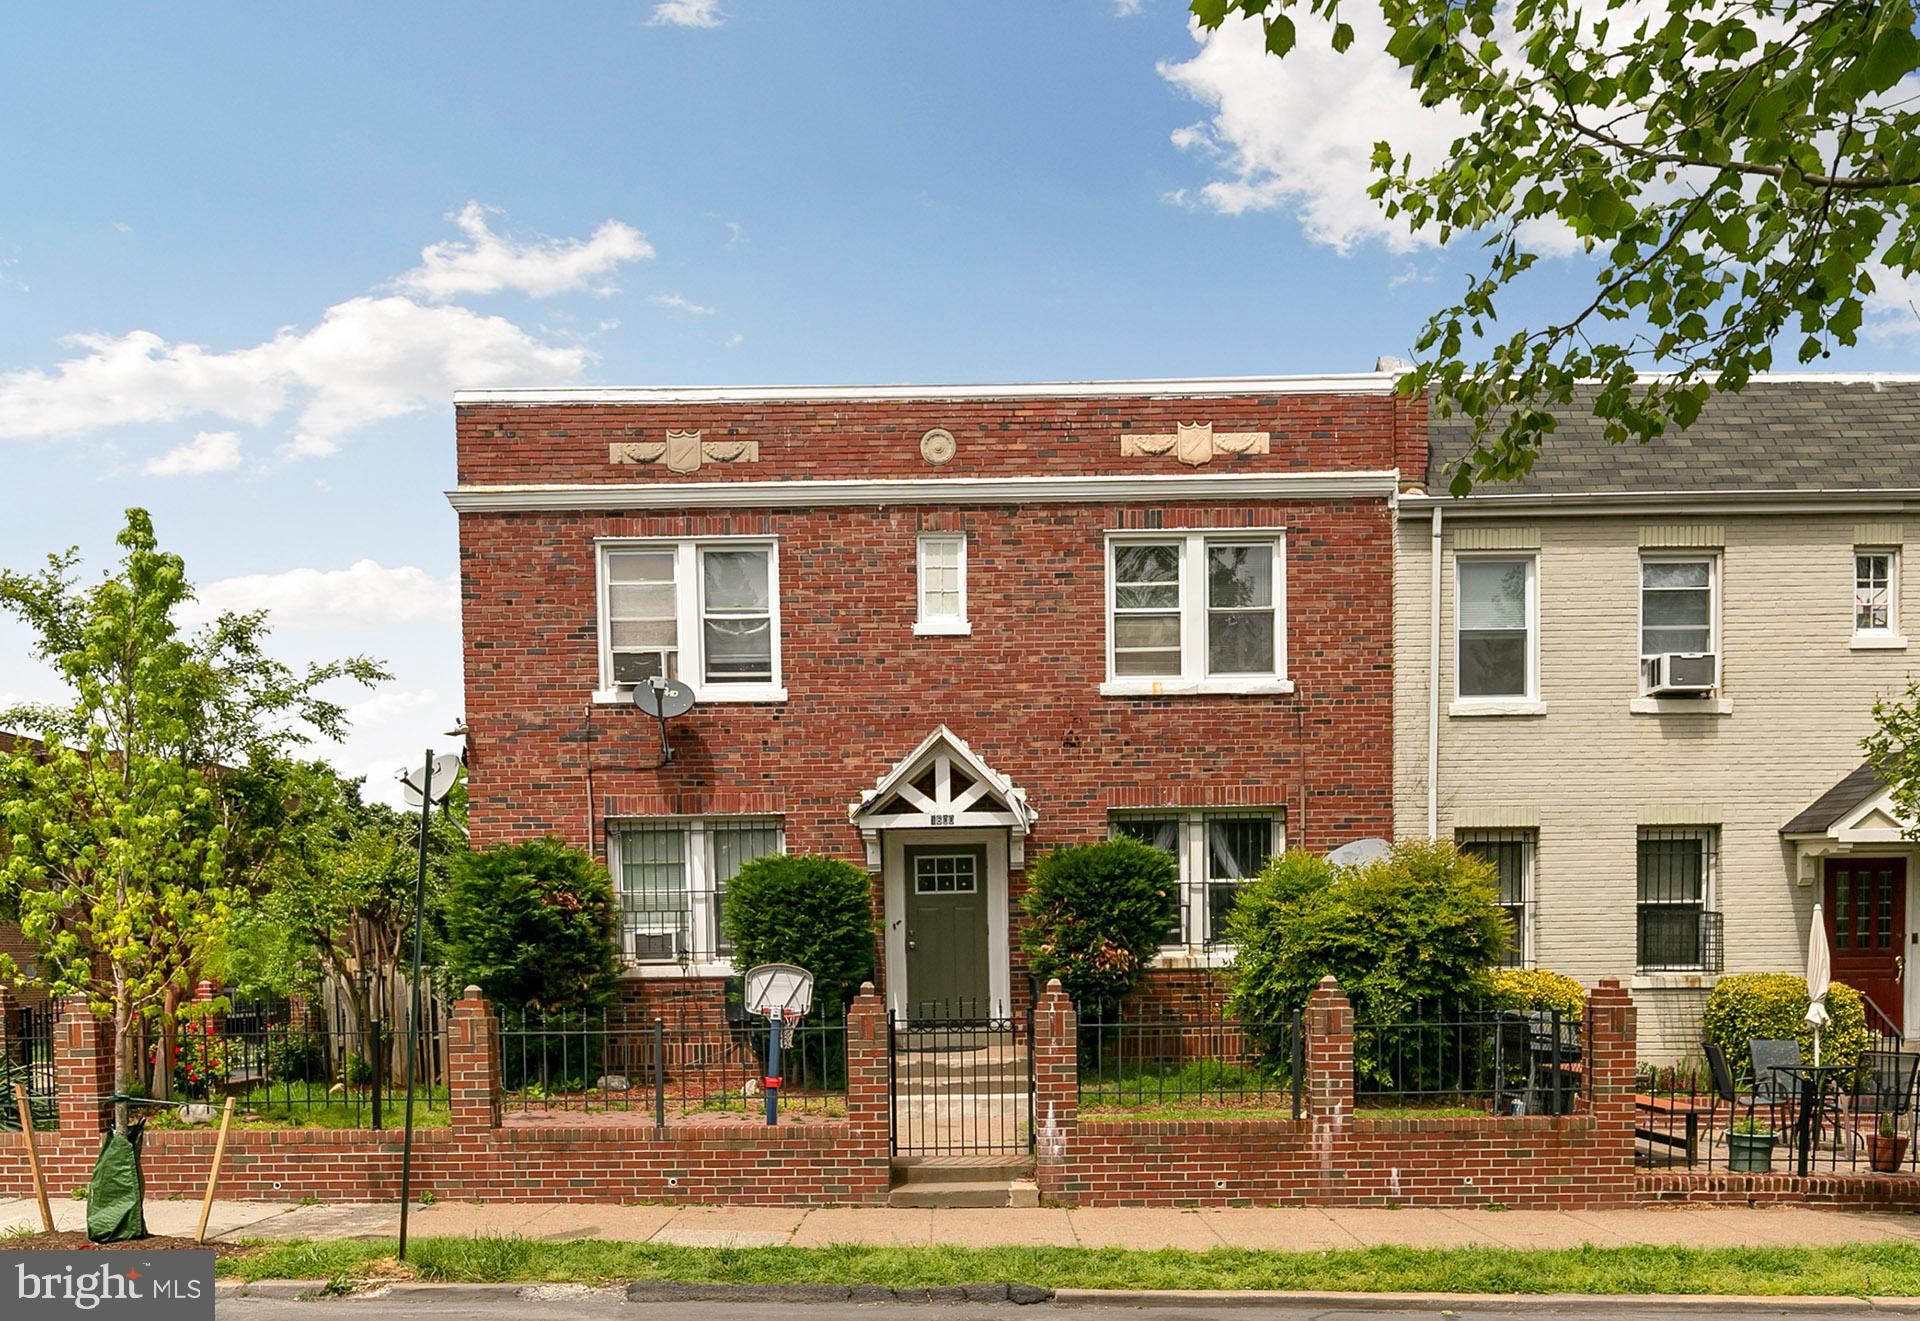 Photo for 1600 Isherwood STREET NE, Washington, DC 20002 (MLS # DCDC426792)